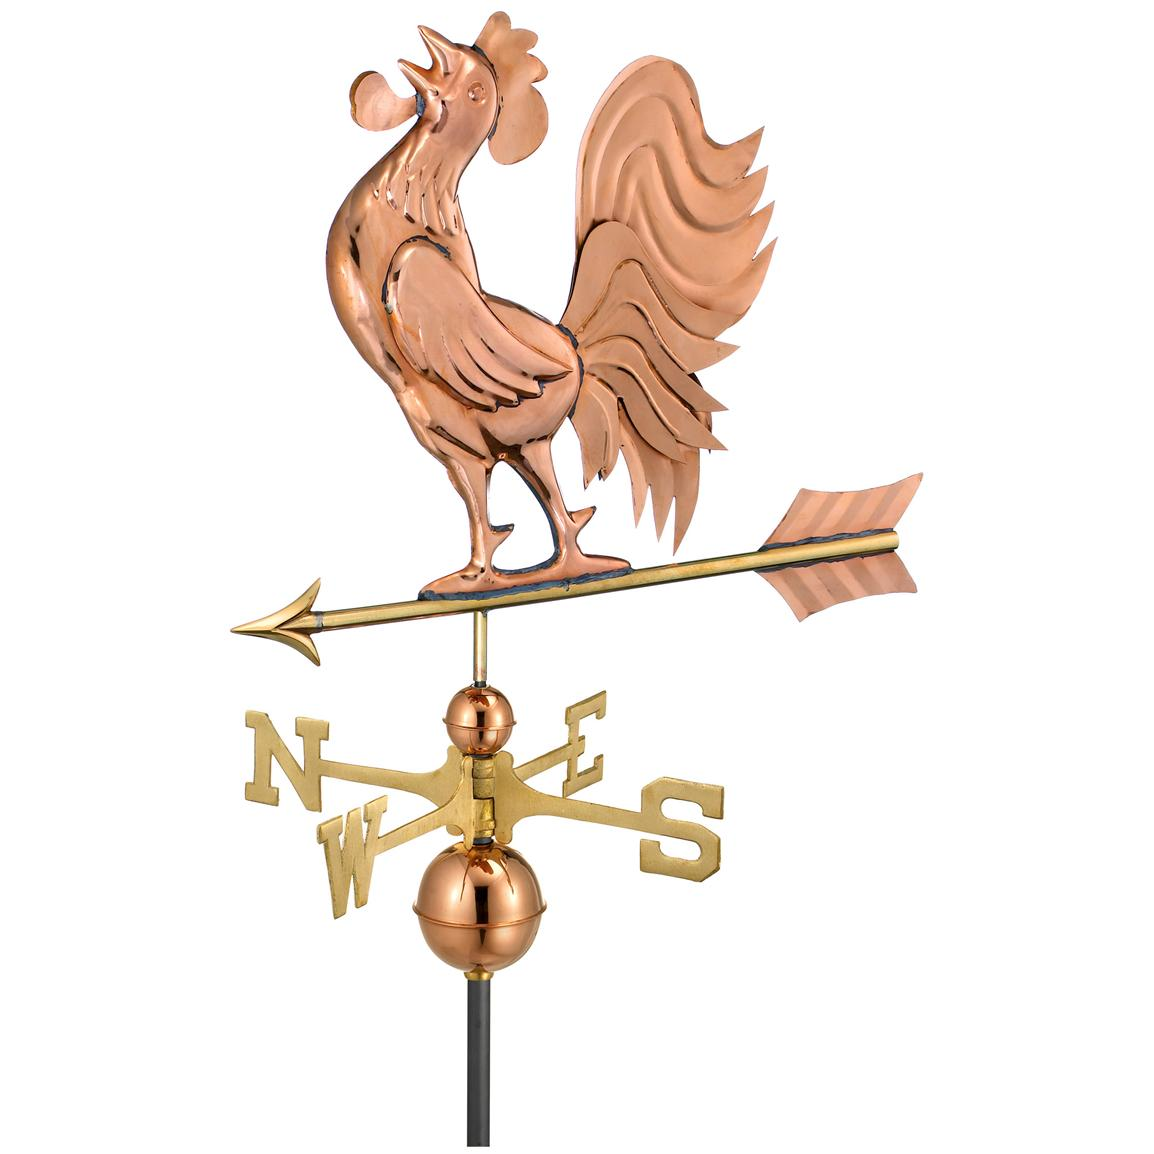 Crowing Rooster Weathervane, 25x18 inch h.